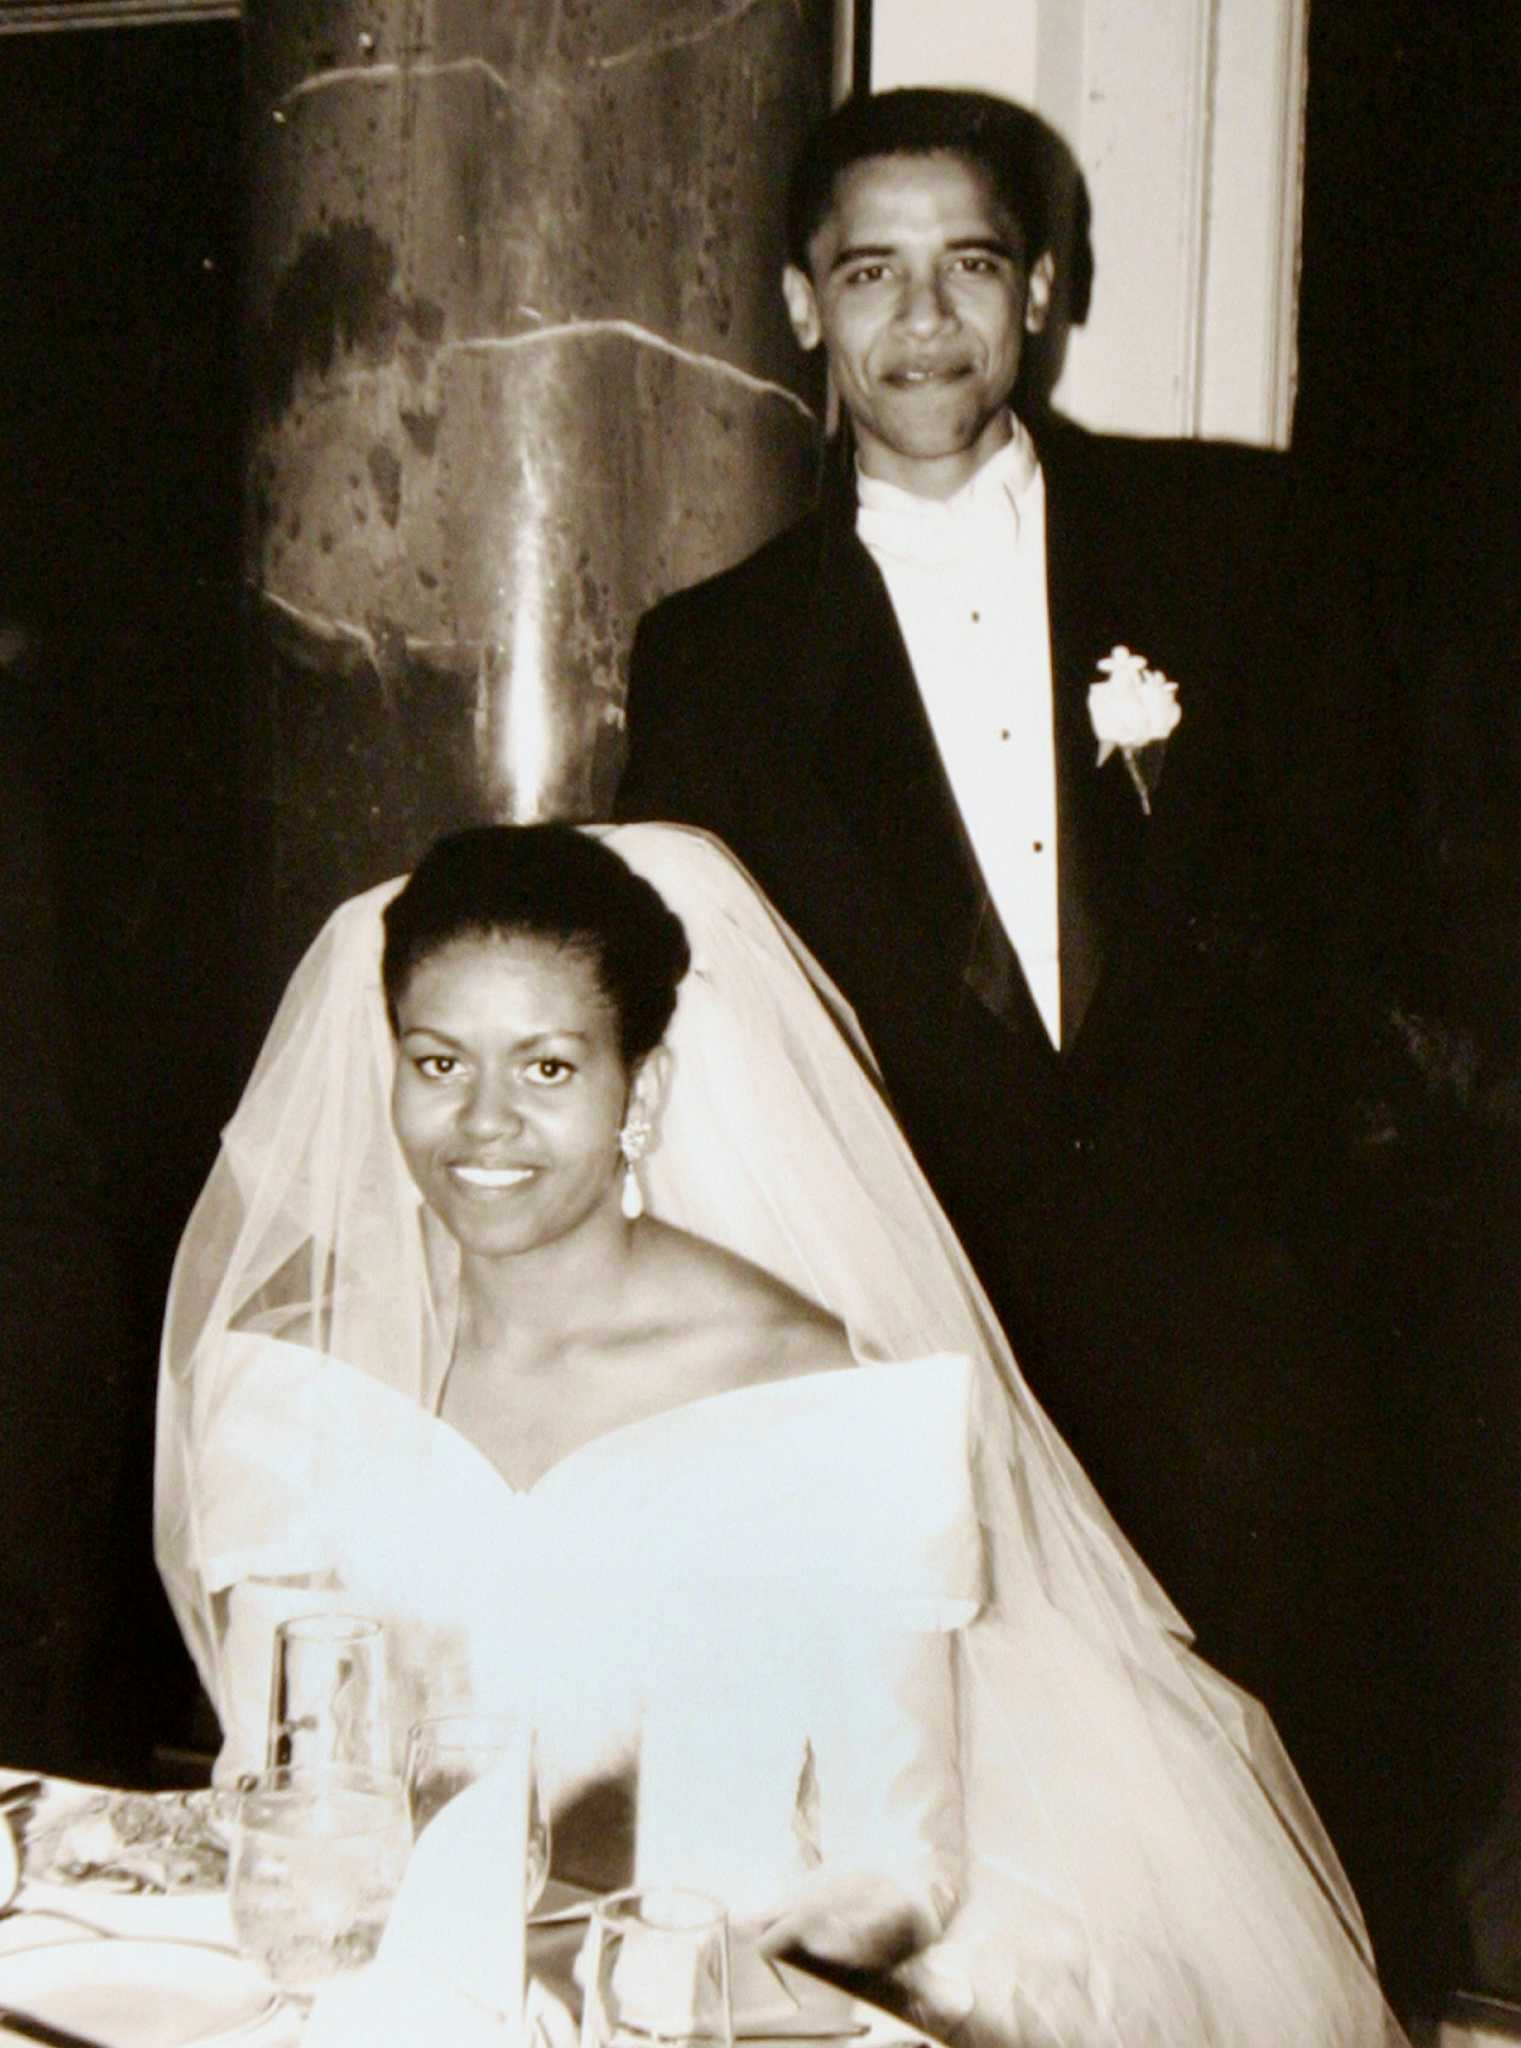 Michelle Obama Tributes 25th Wedding Anniversary To Barack With